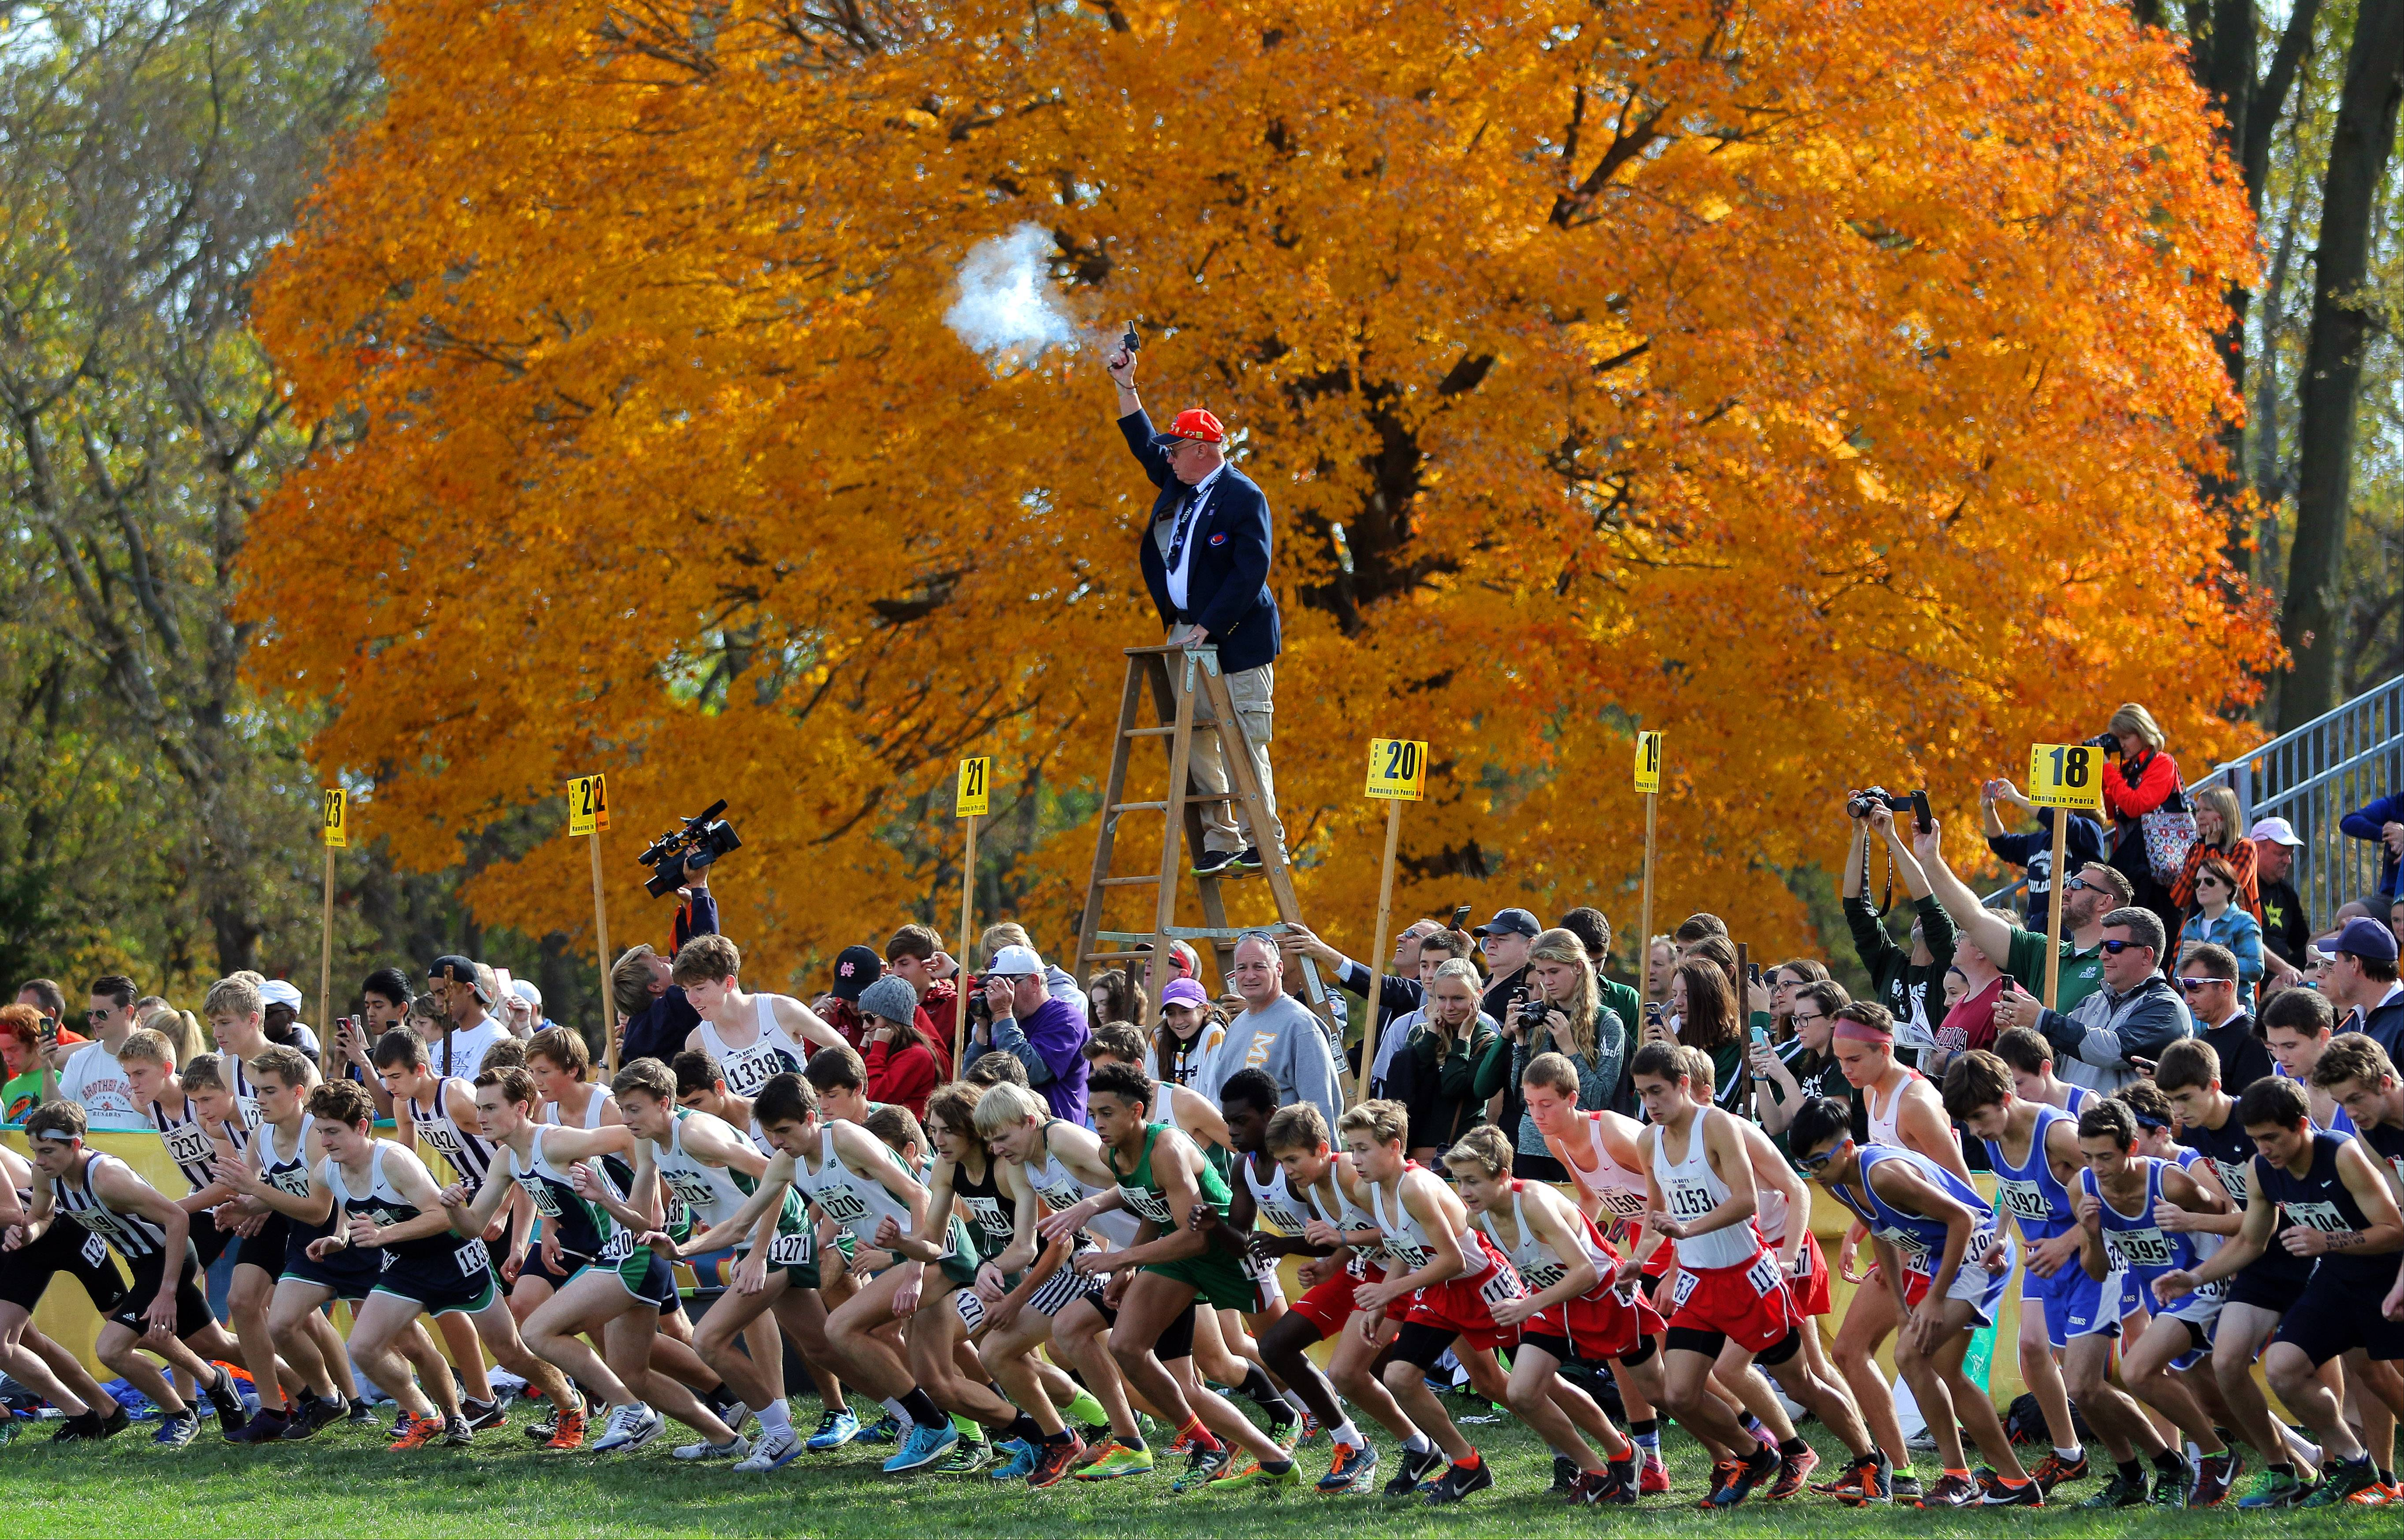 Peoria's Detweiller Park is the destination for cross country runners throughout Illinois this weekend for Saturday's state championship races.